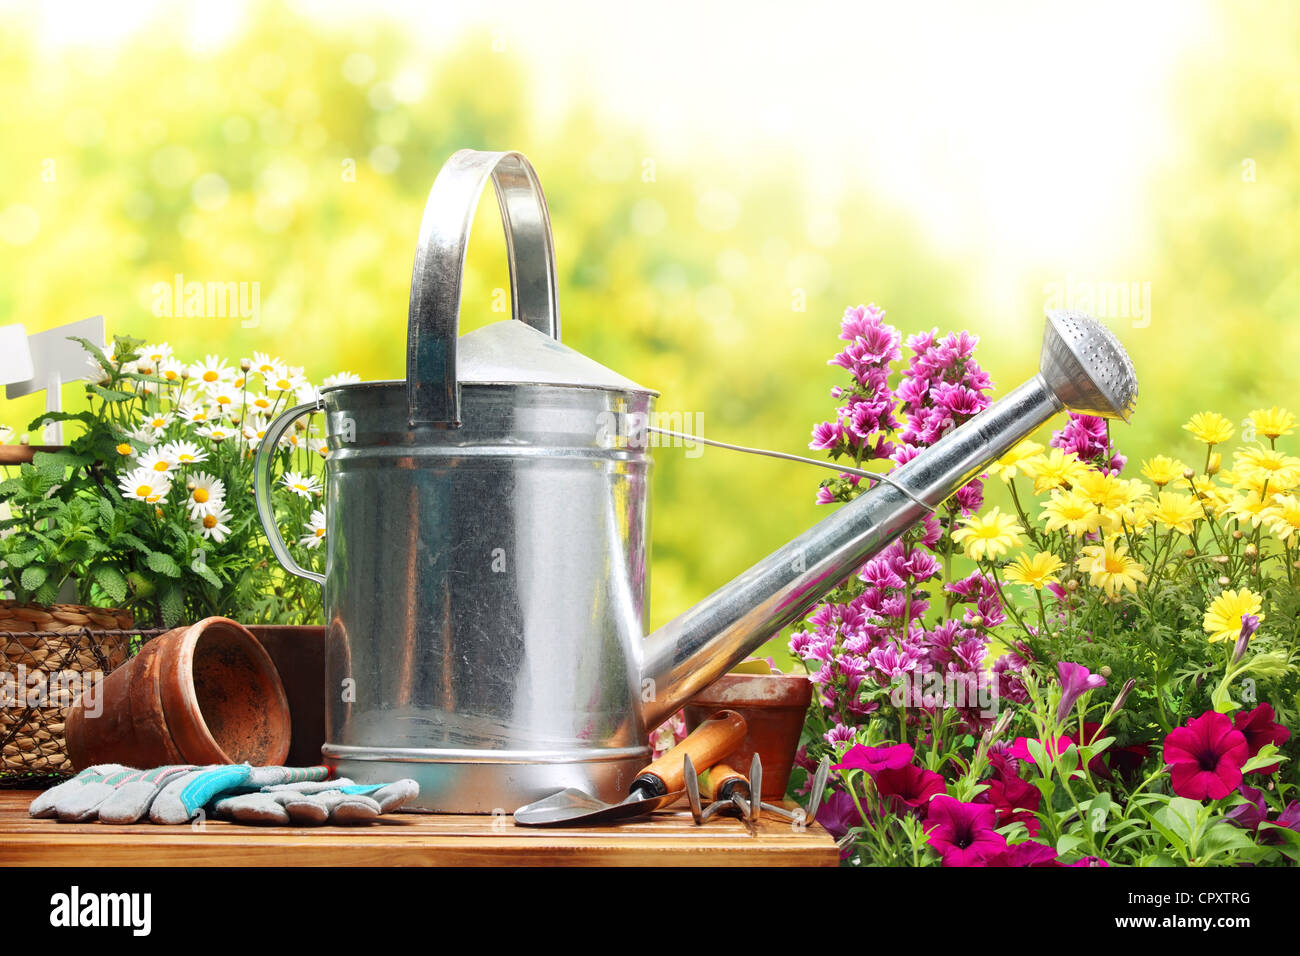 Outdoor gardening tools and flowers - Stock Image